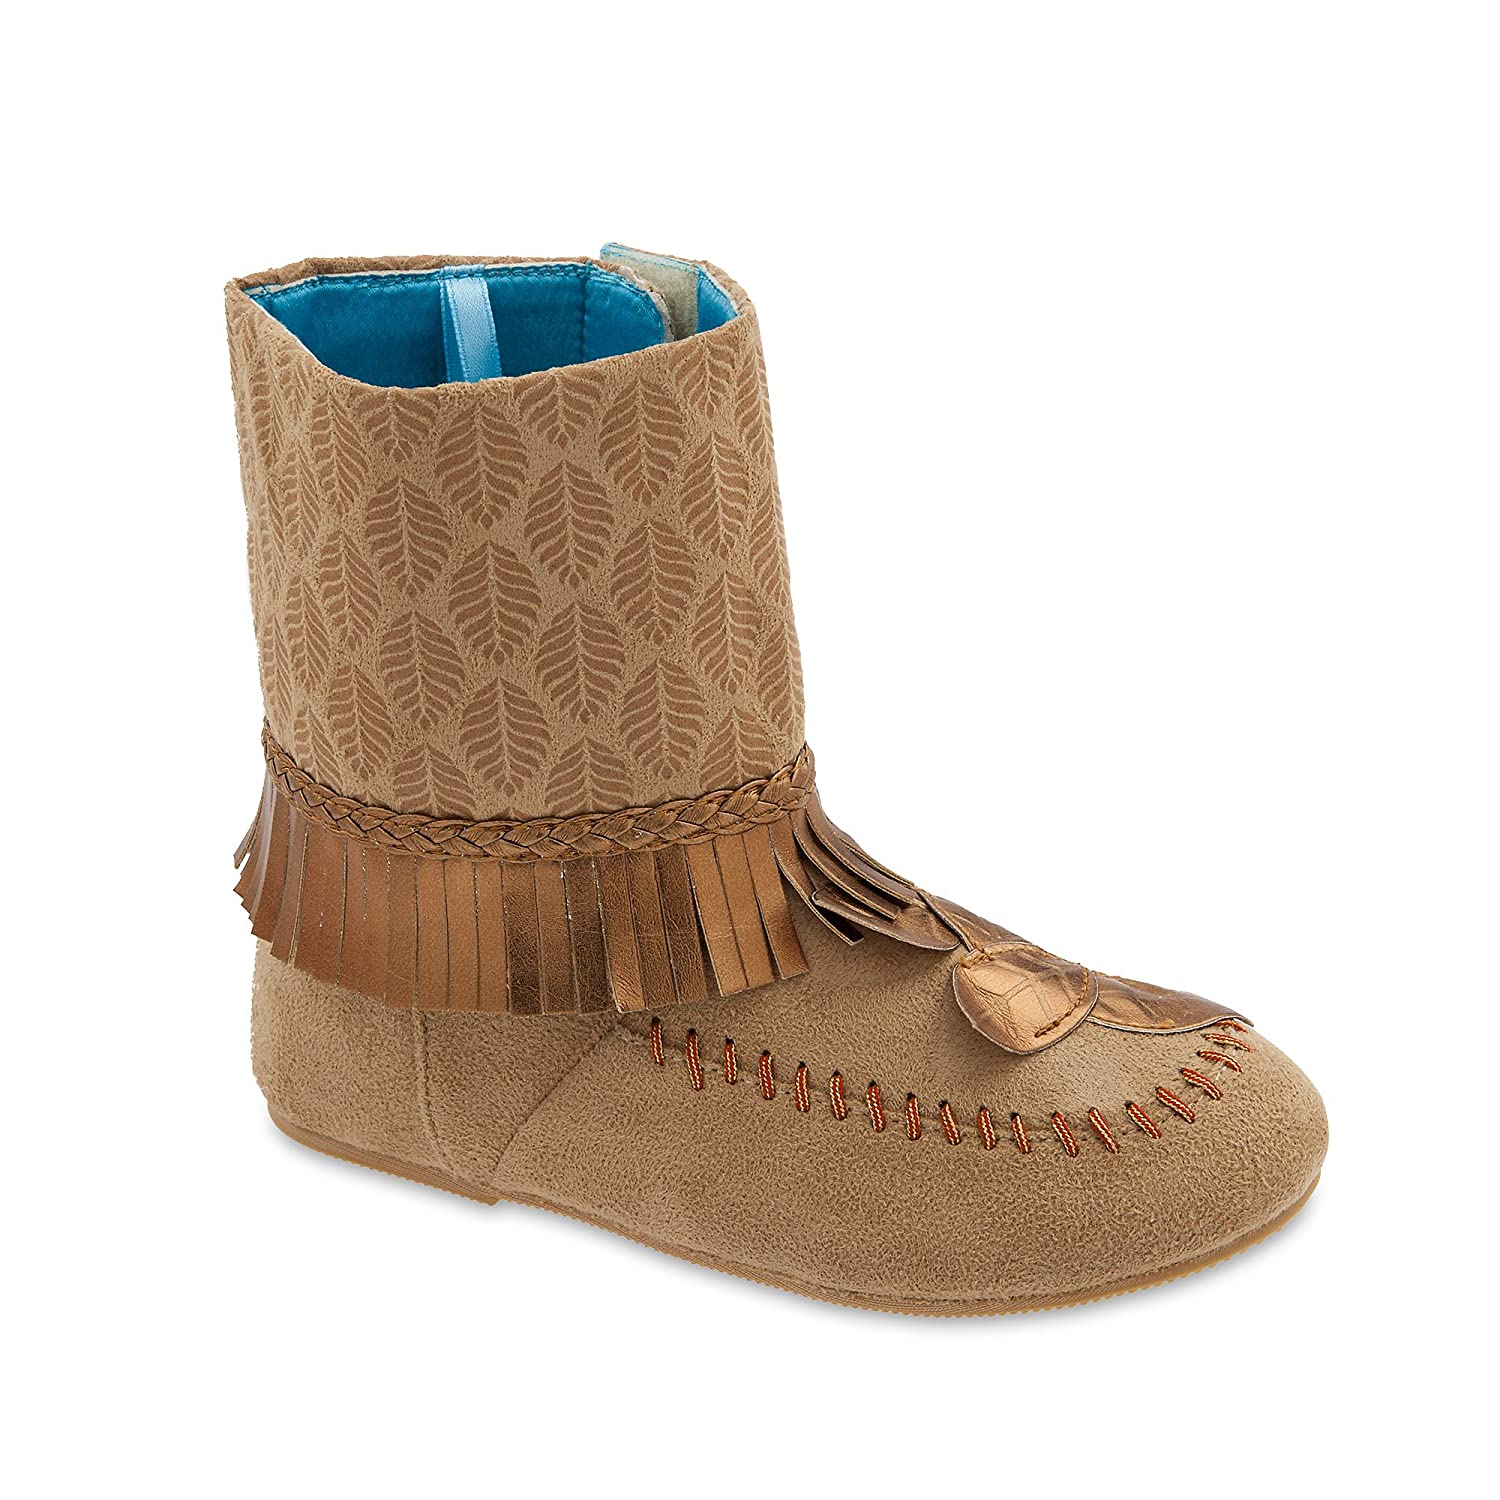 Disney Pocahontas Costume Boots for Kids Multi